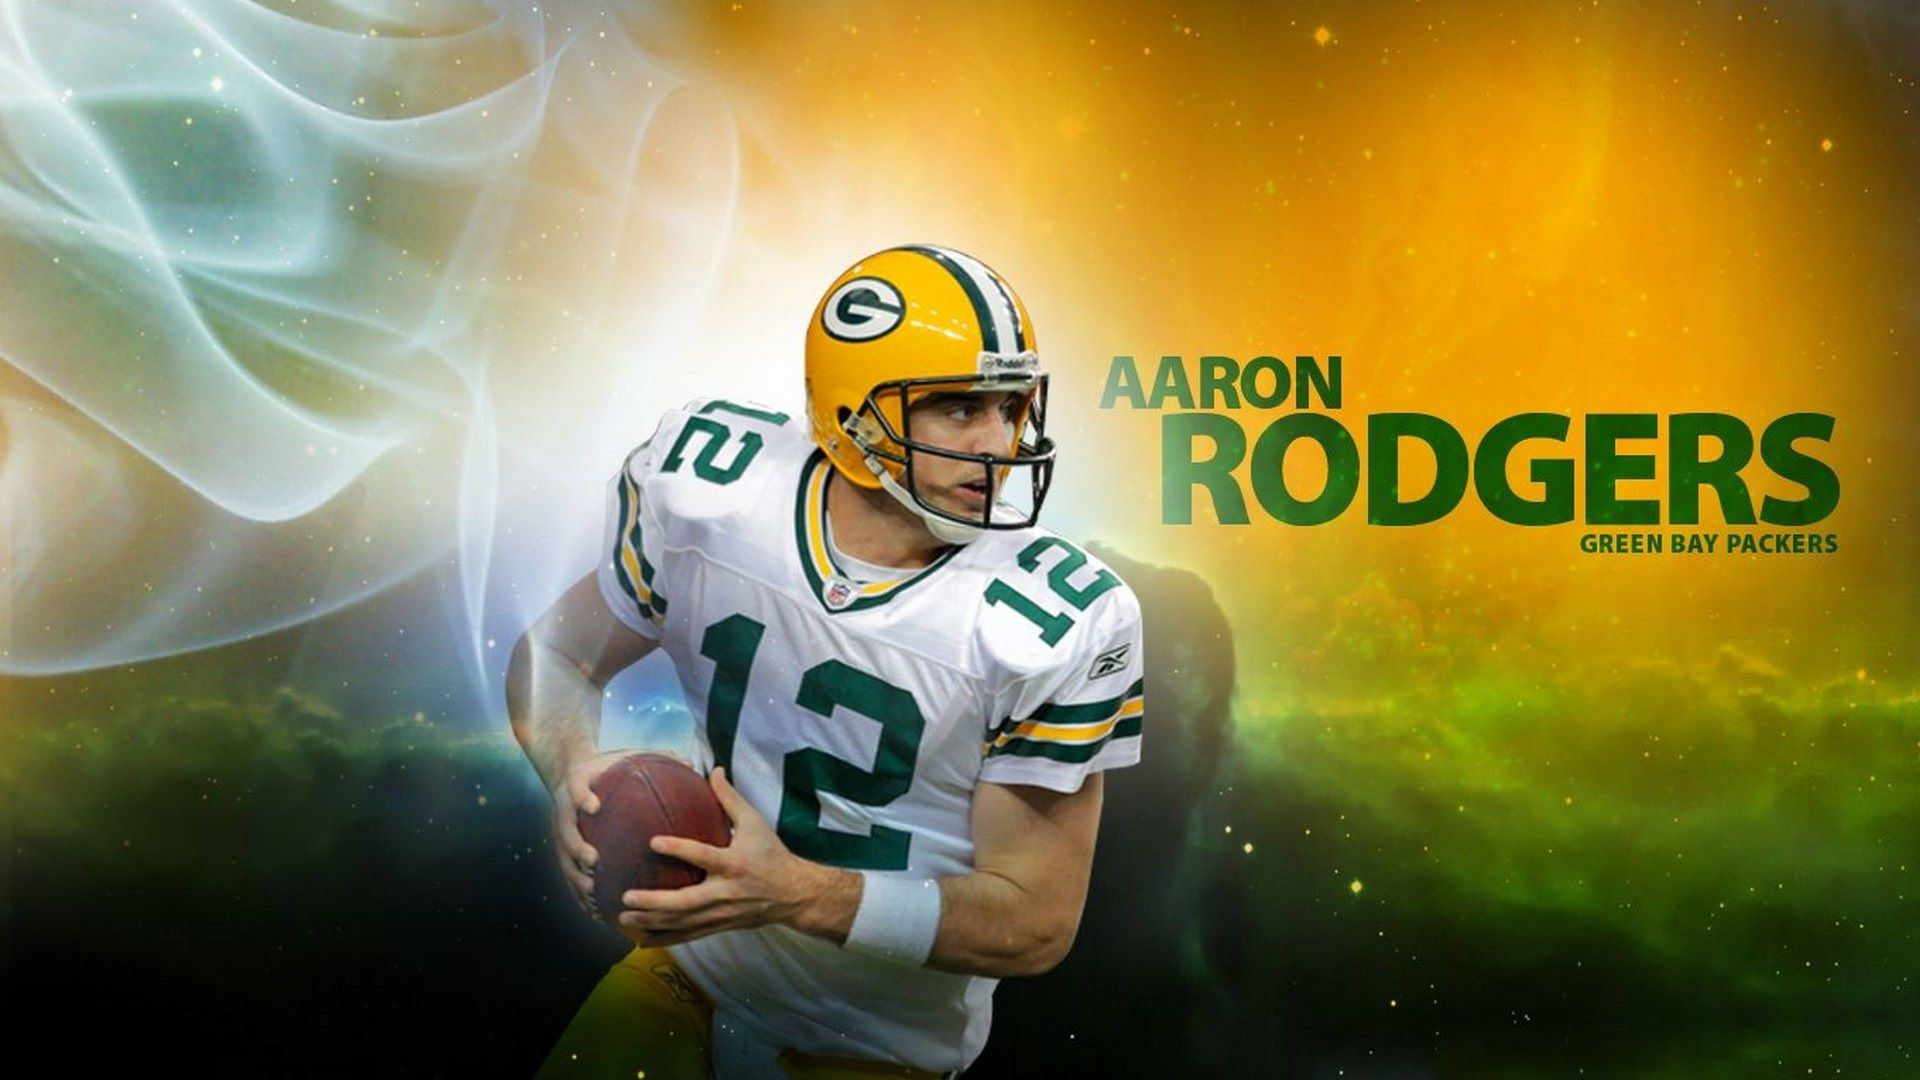 Aaron Rodgers Wallpaper For Mac 2020 Nfl Football Wallpapers Nfl Football Wallpaper Green Bay Packers Wallpaper Green Bay